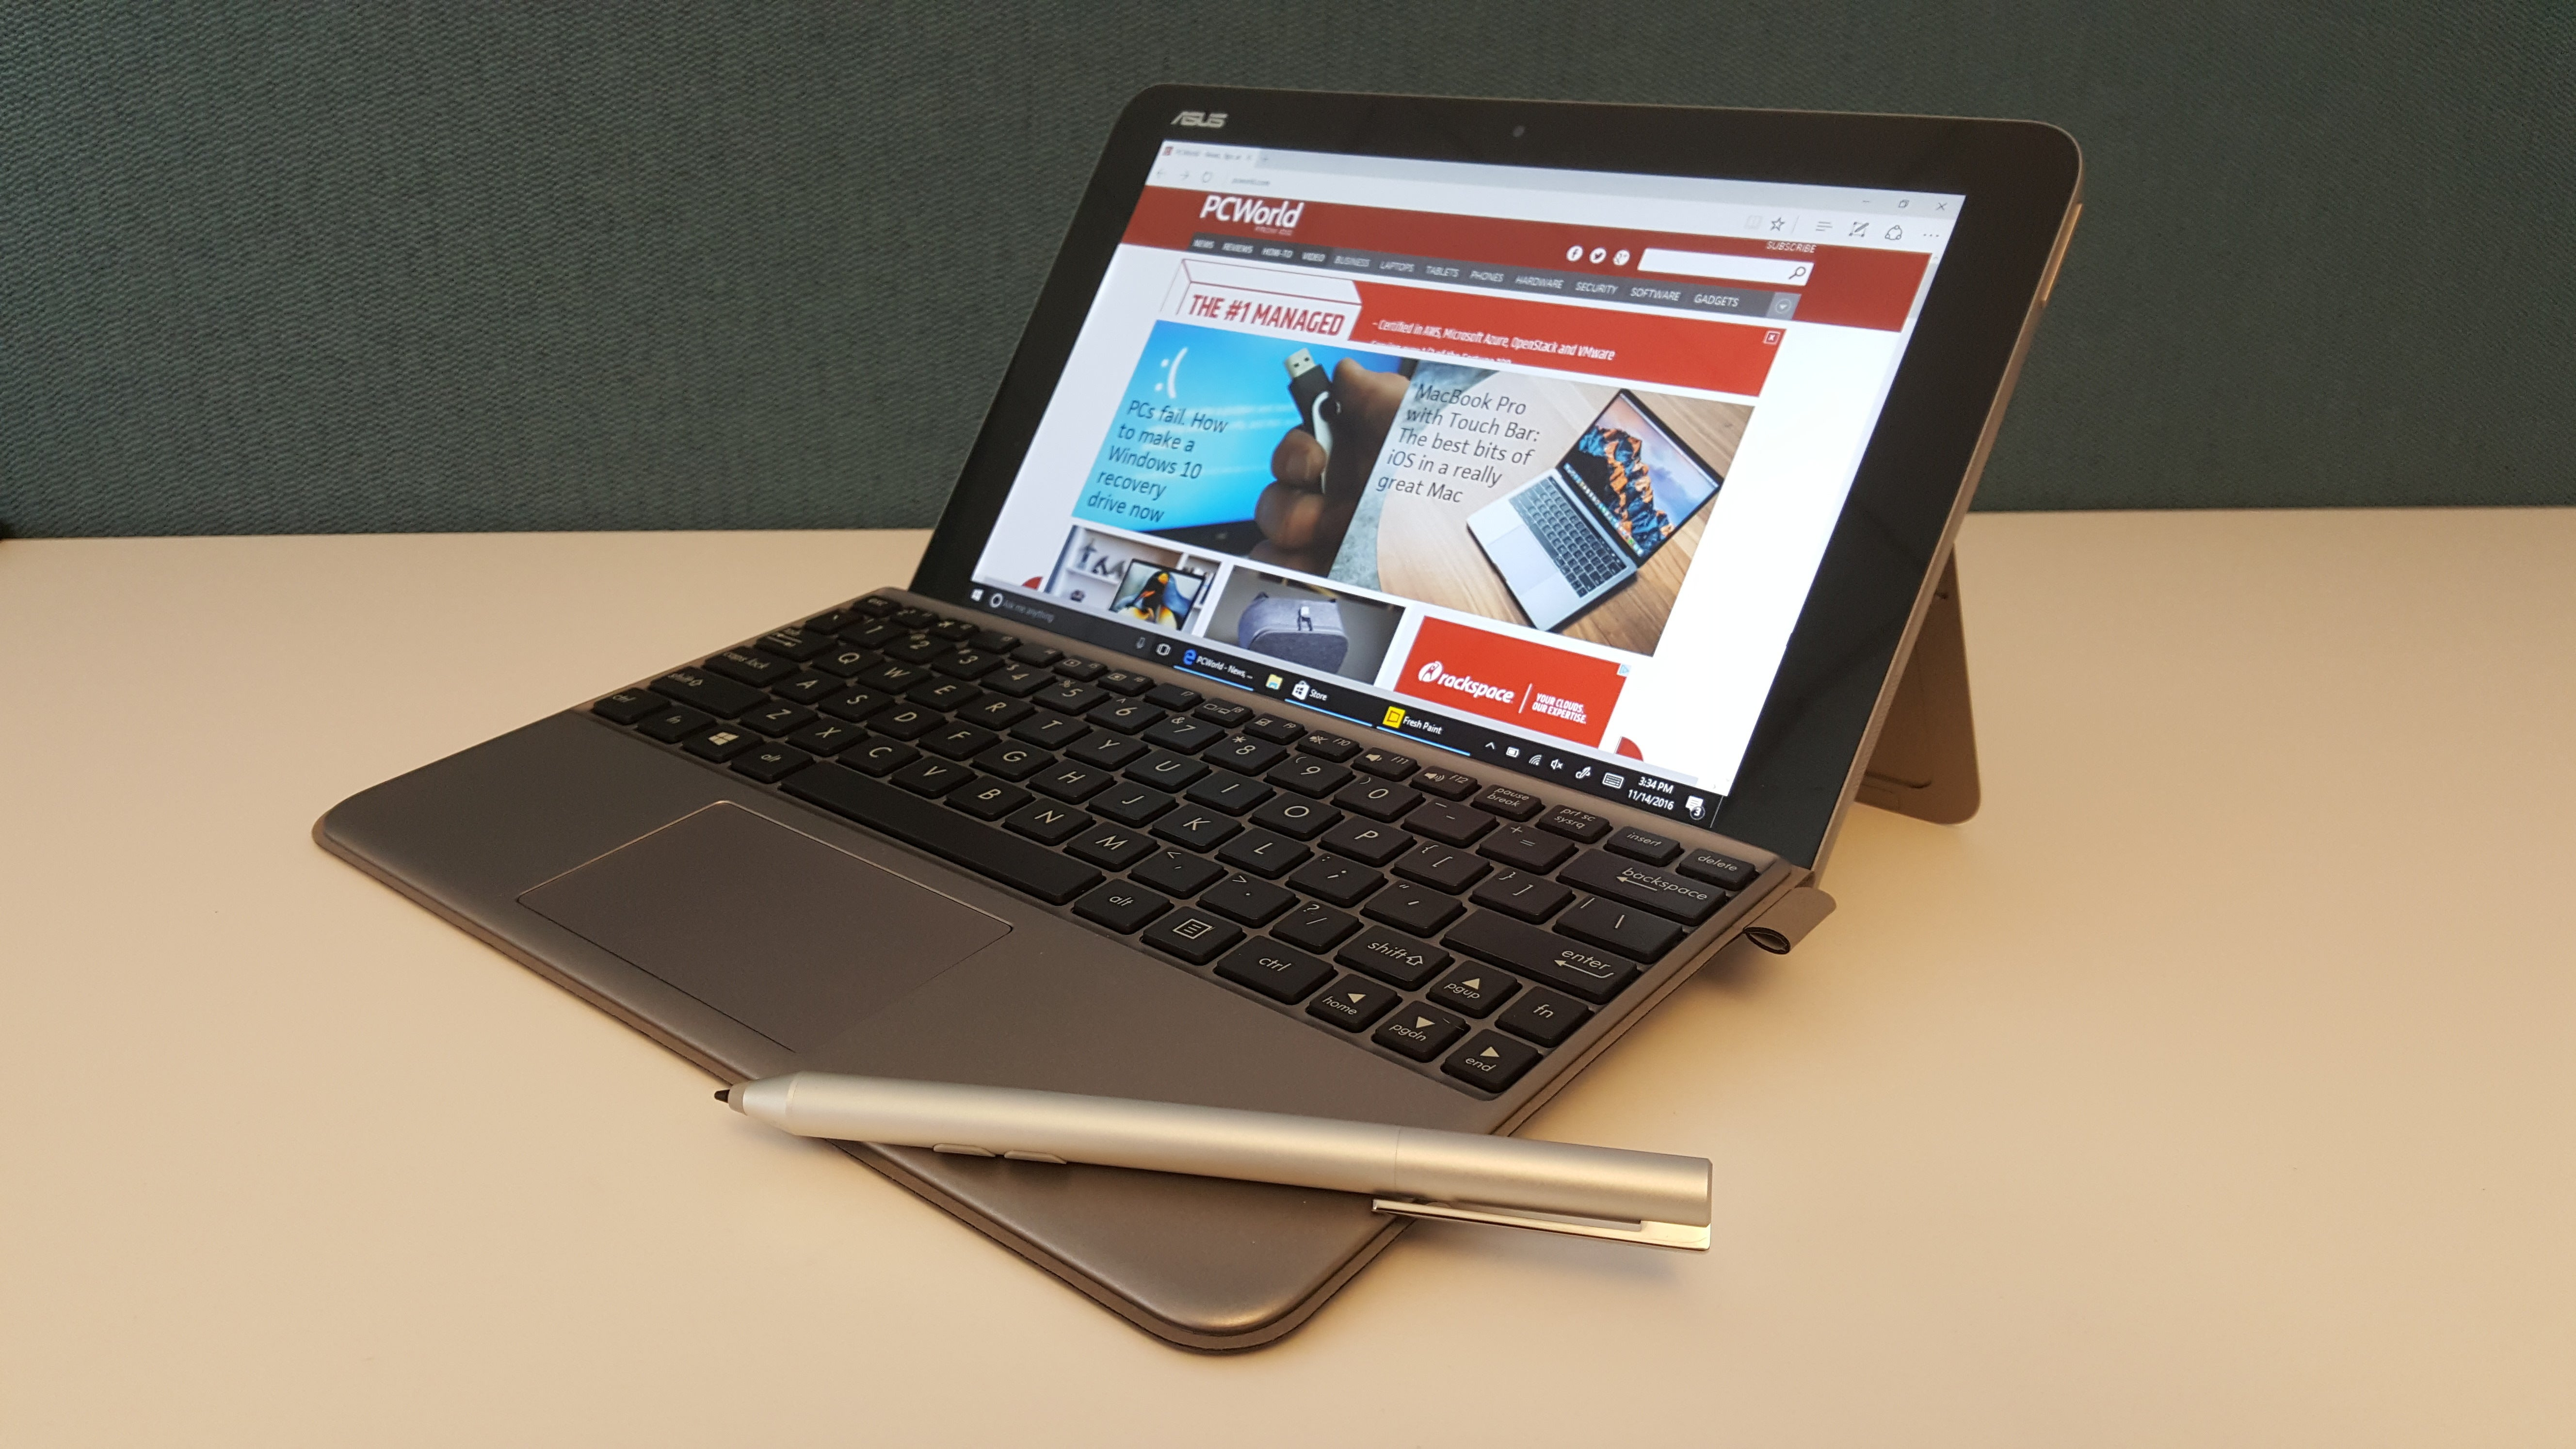 465704a0476dda Asus Transformer Mini review  This 2-in-1 delivers good-enough ...